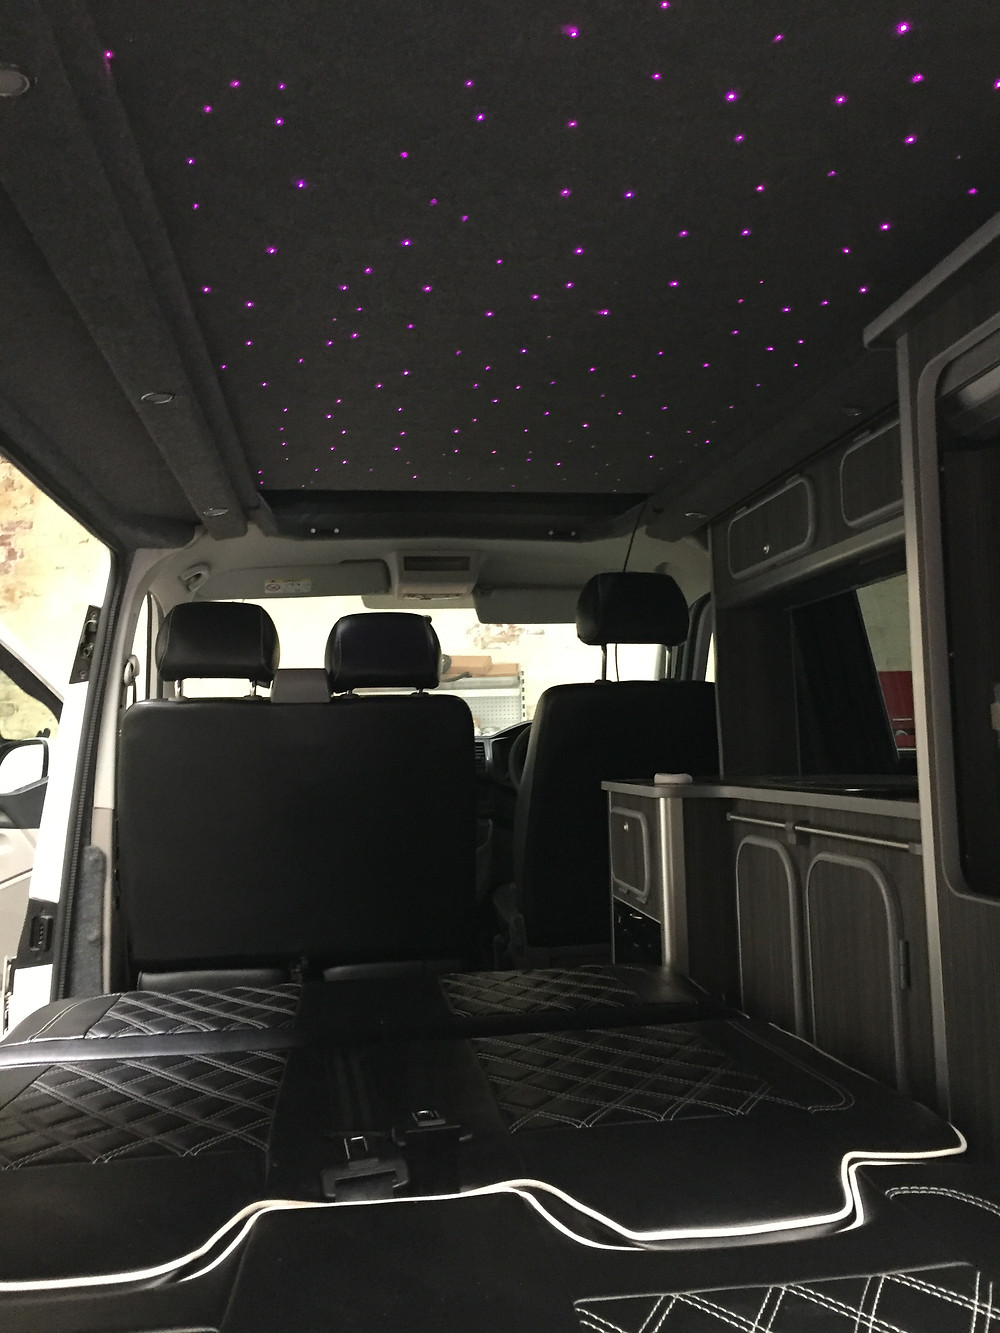 VW campervan starry night ceiling